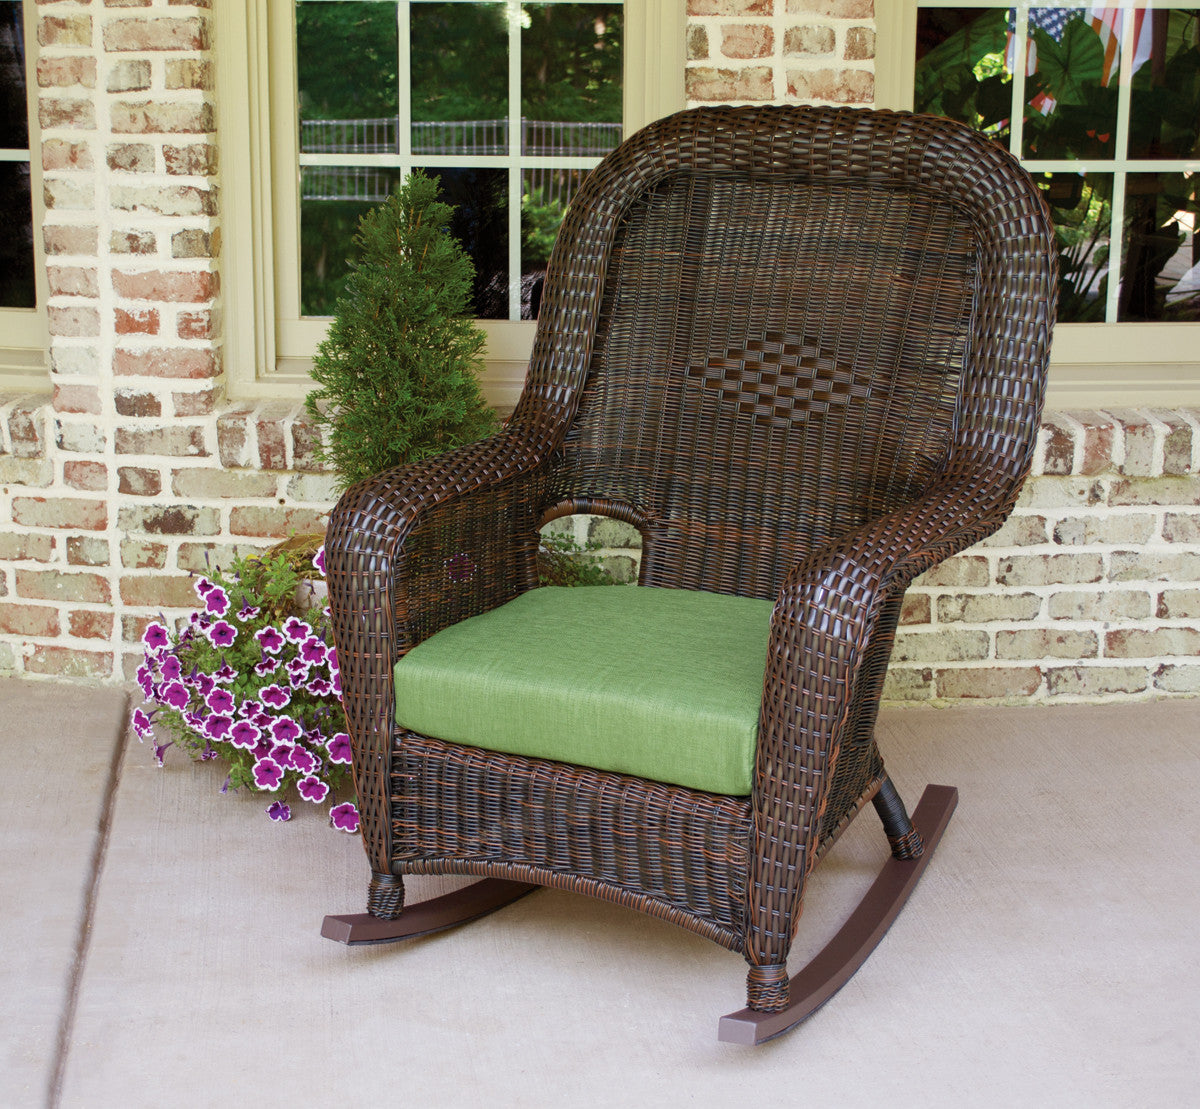 furniture chair glider image outdoor armchair inspiration concept for rocking aflk wicker and rockers best inspiring